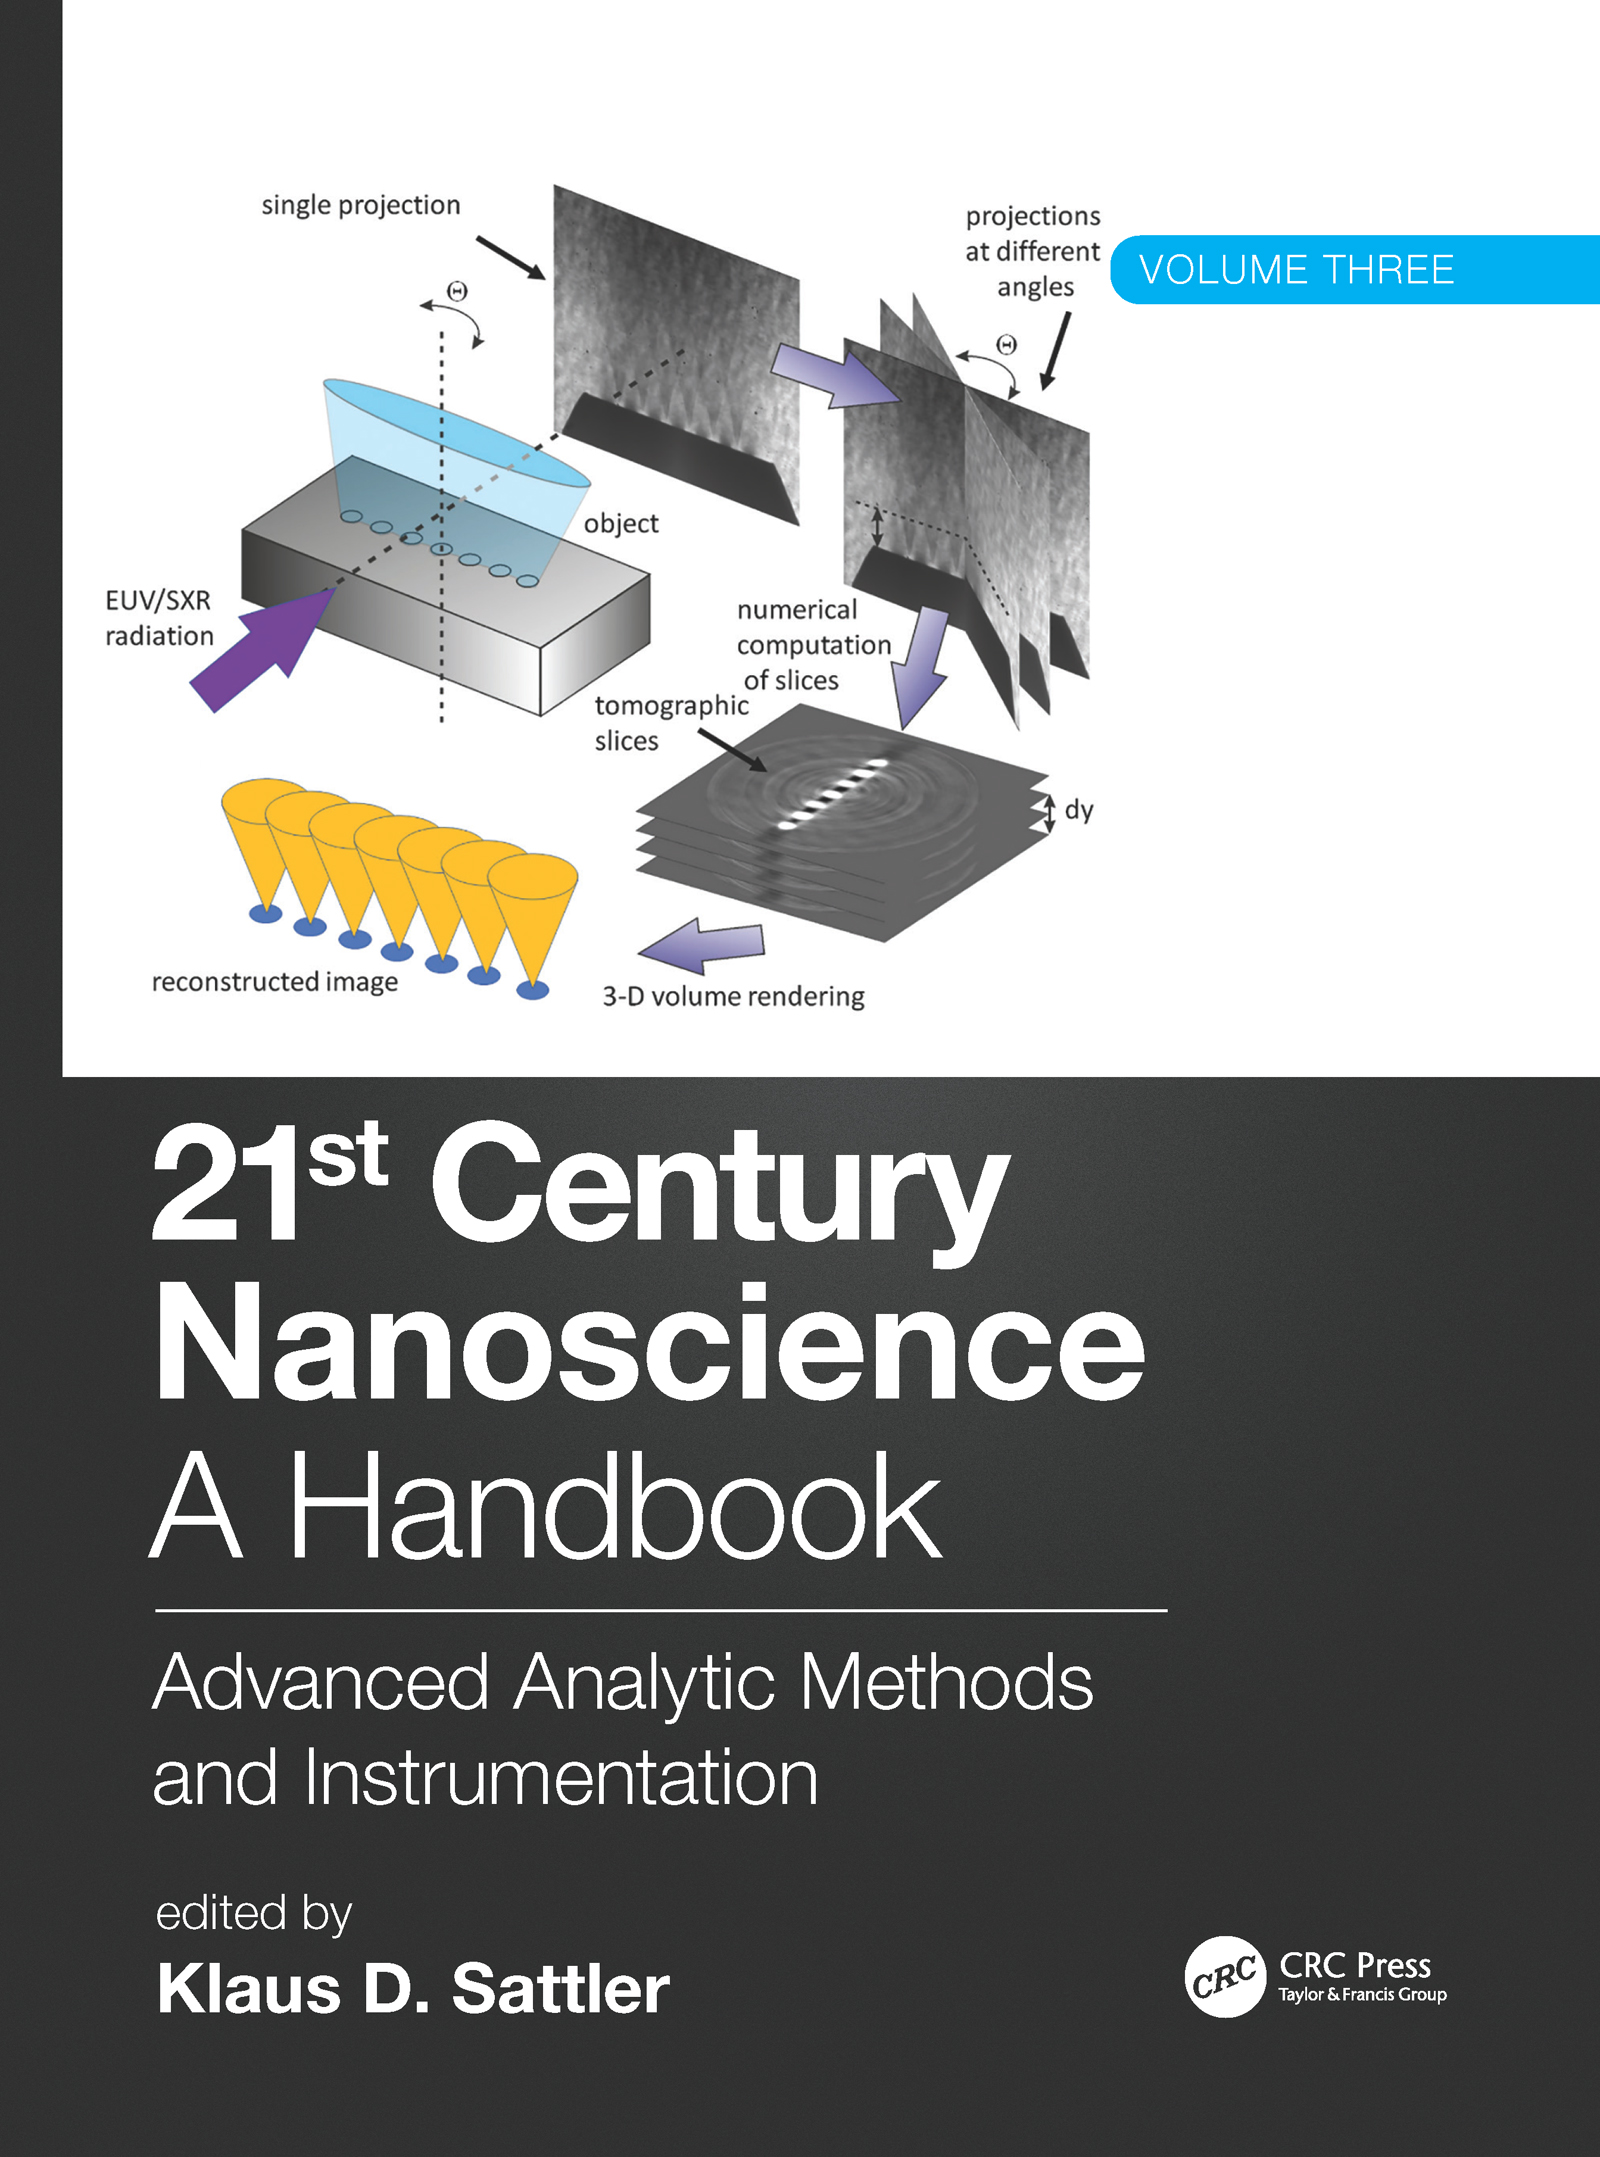 21st Century Nanoscience - A Handbook: Advanced Analytic Methods and Instrumentation (Volume 3) book cover